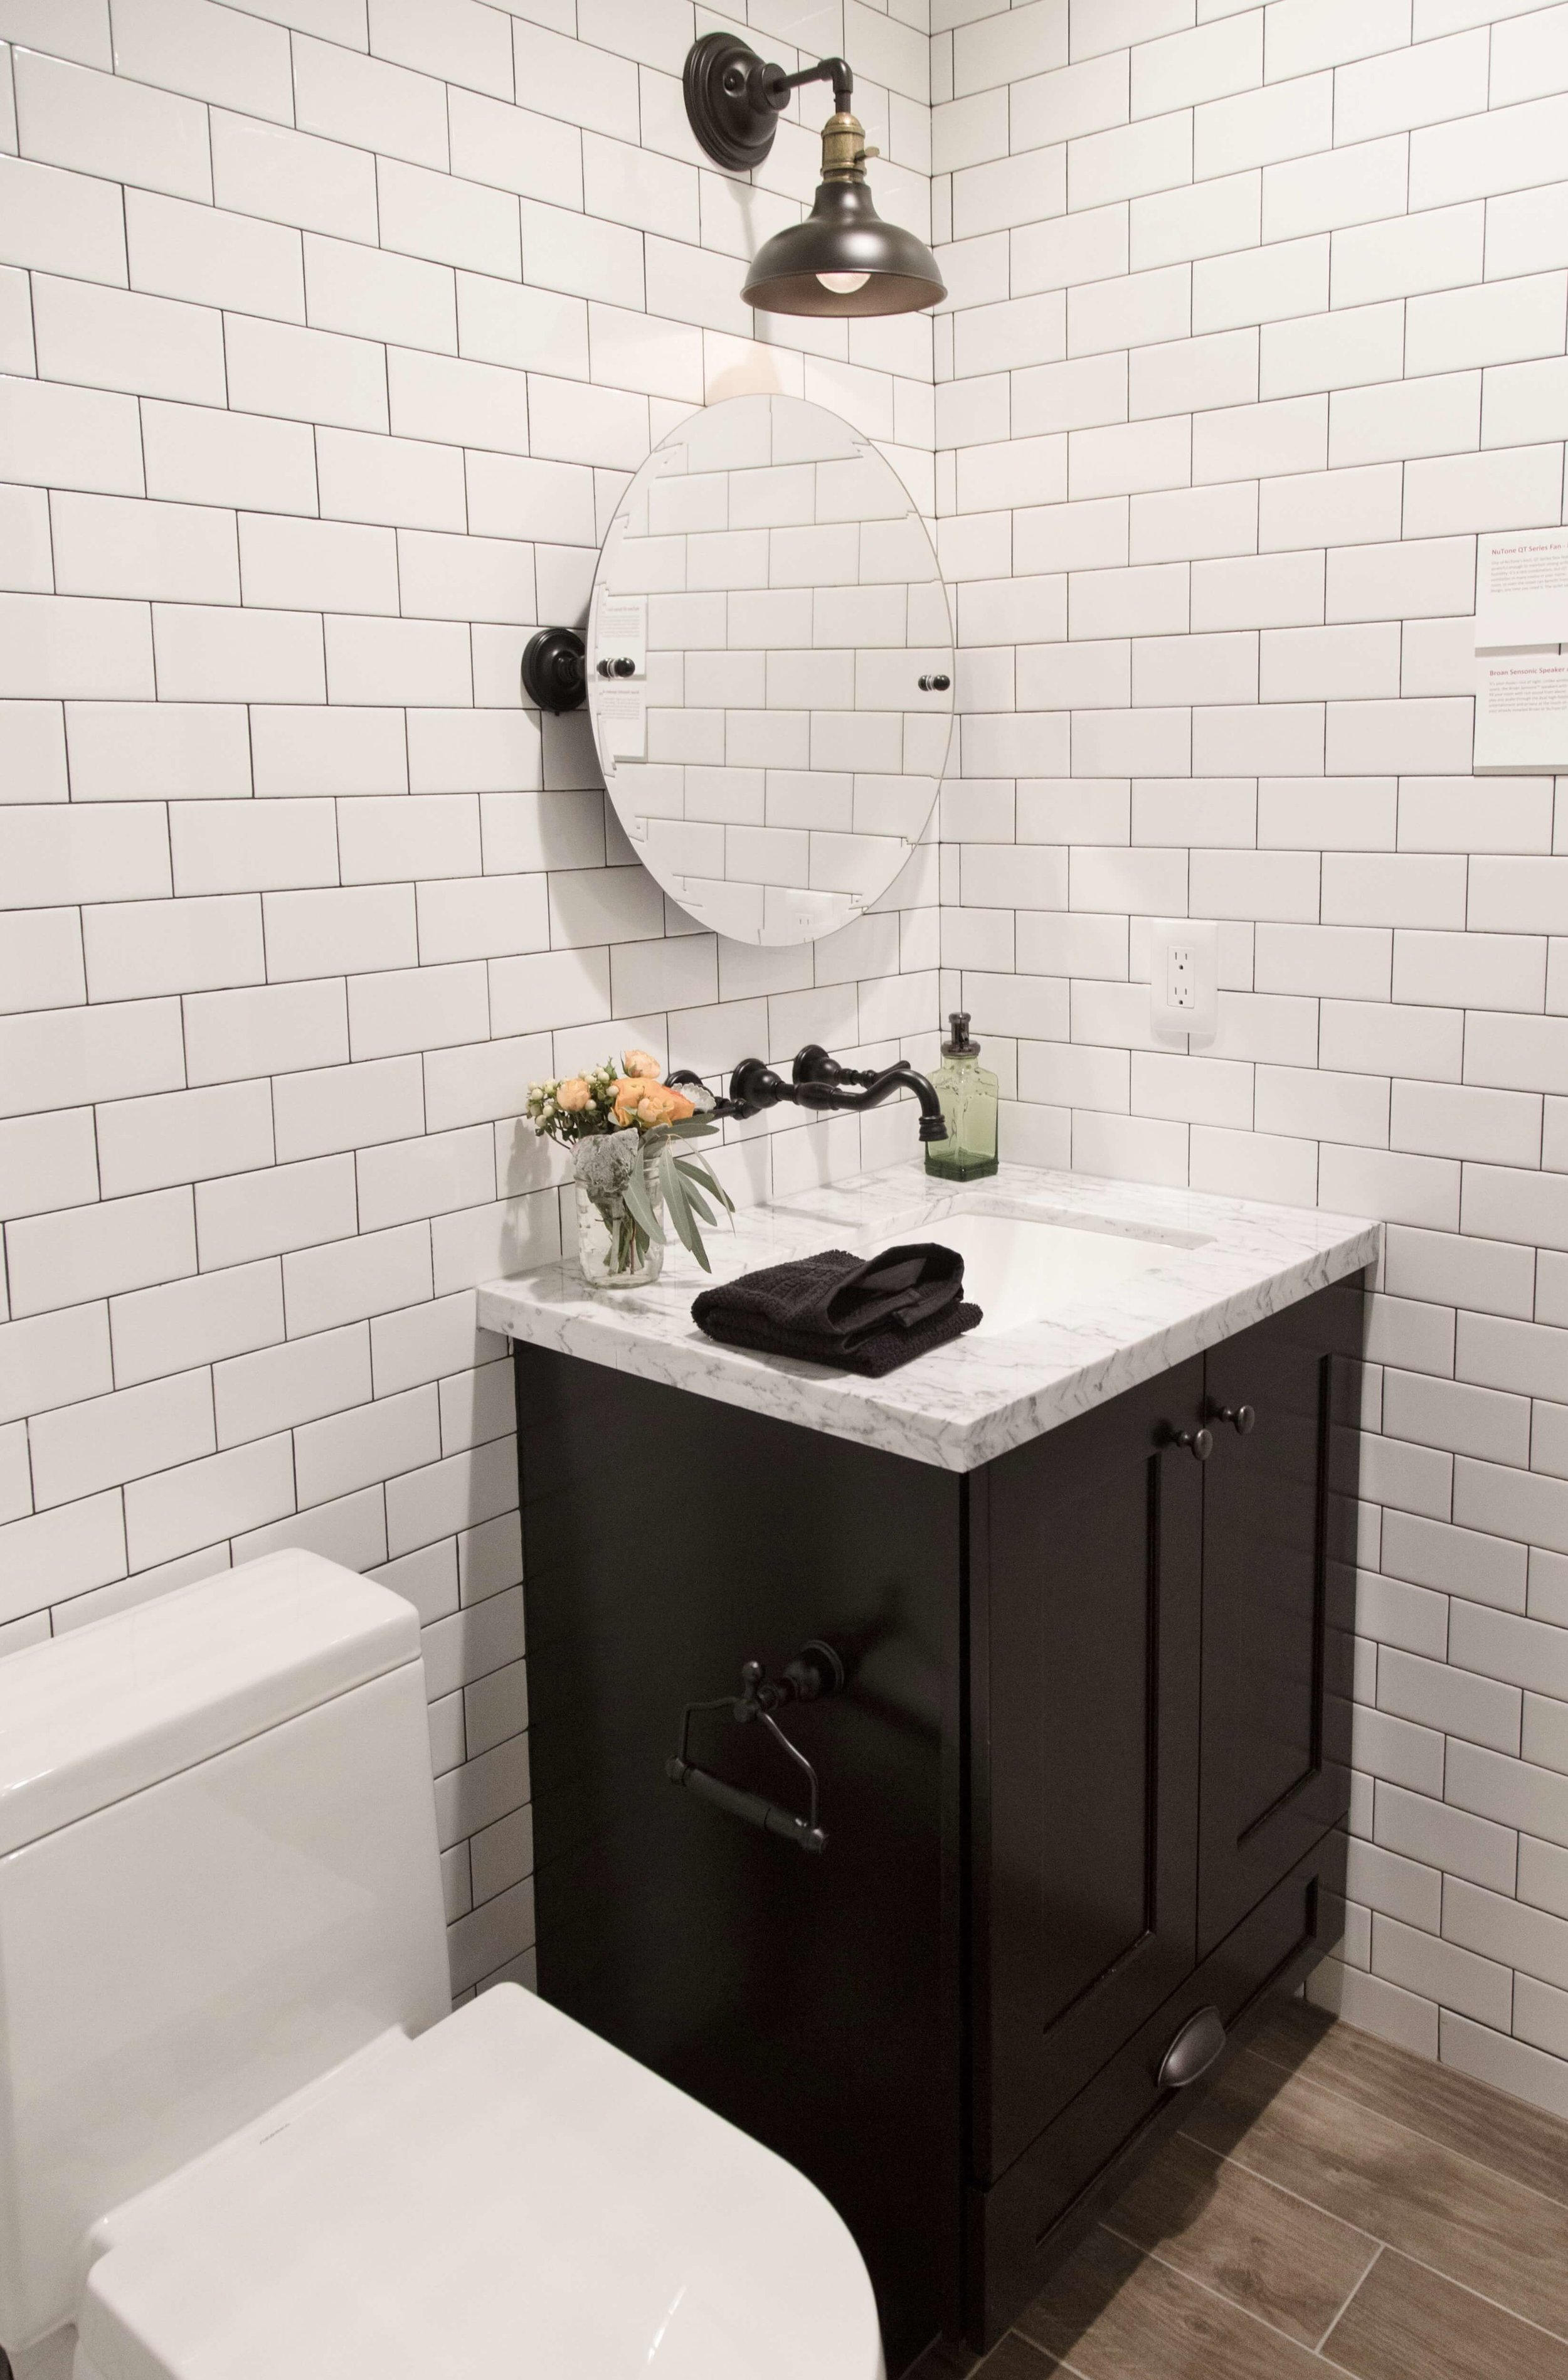 Best Black Bathroom Faucets And Fixtures For The Bath